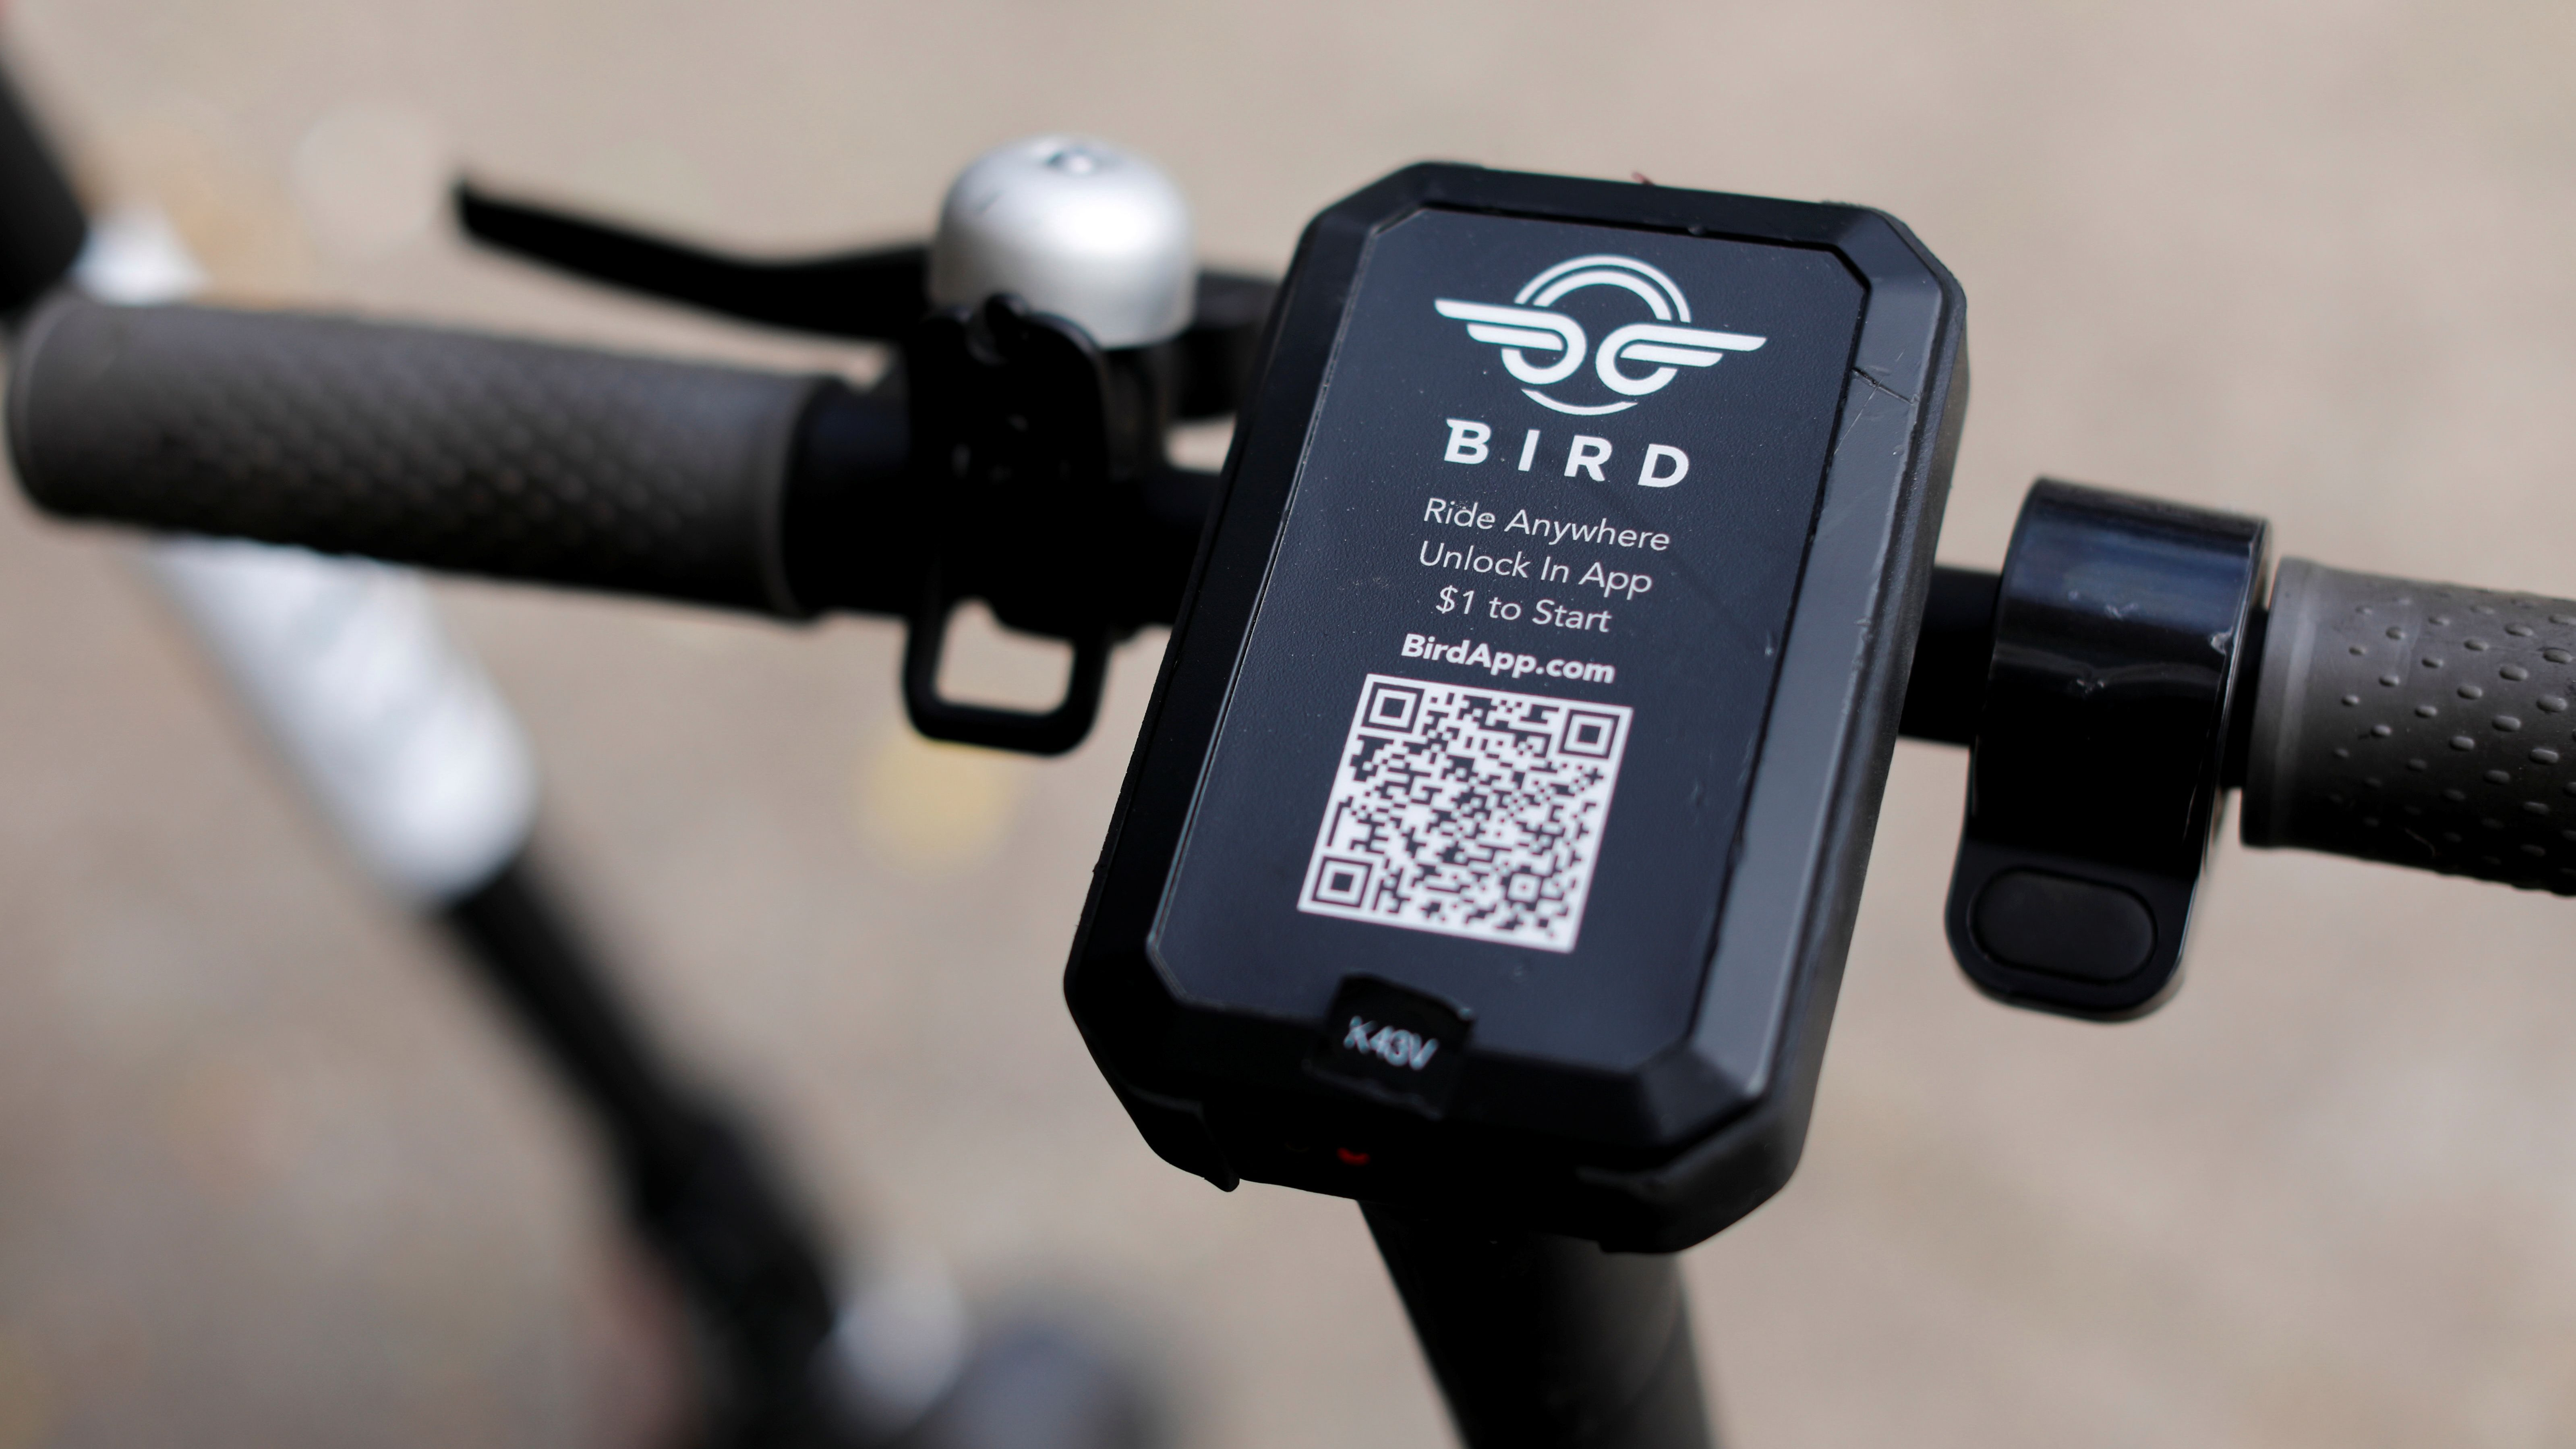 Bird is the fastest startup ever to reach a $1 billion valuation